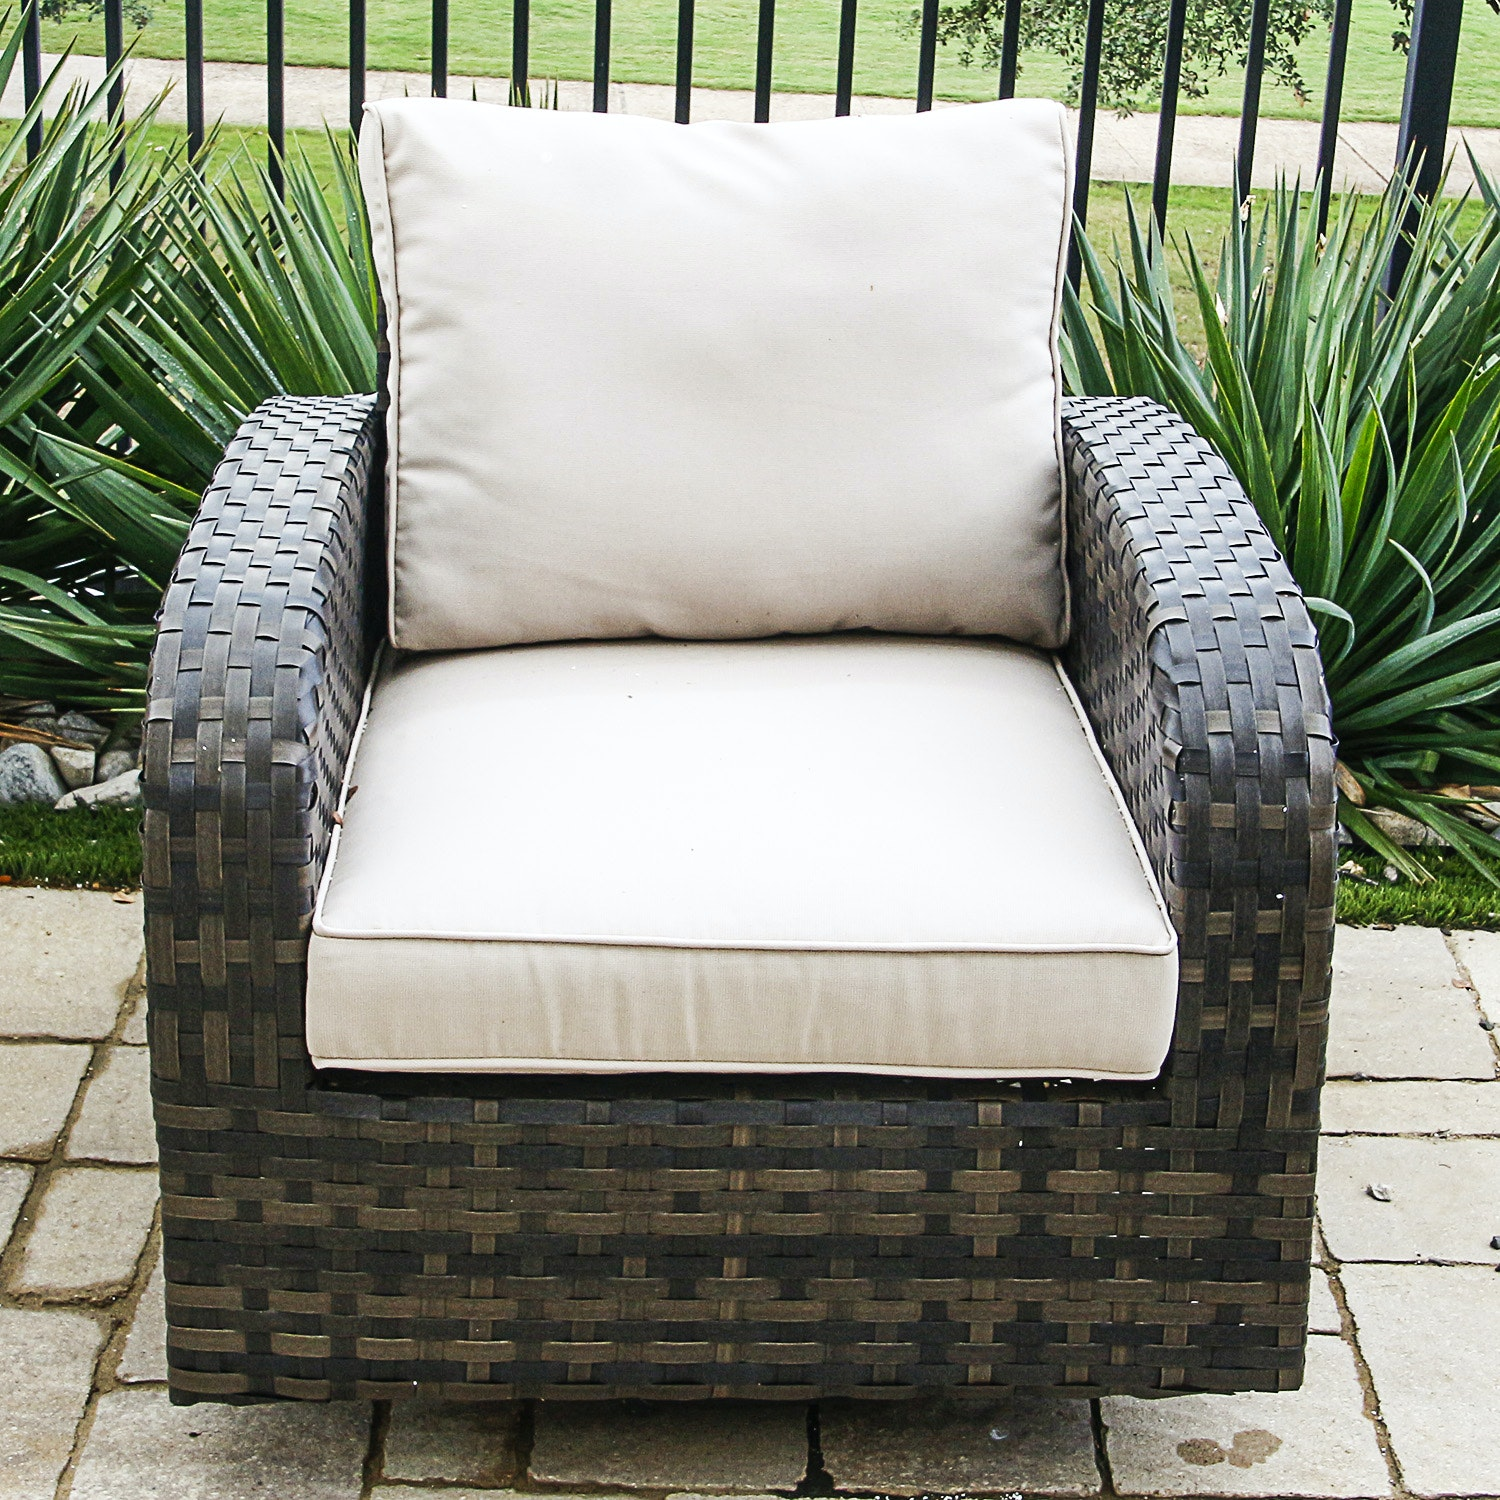 Contemporary Woven Patio Chair with Upholstered Cushions